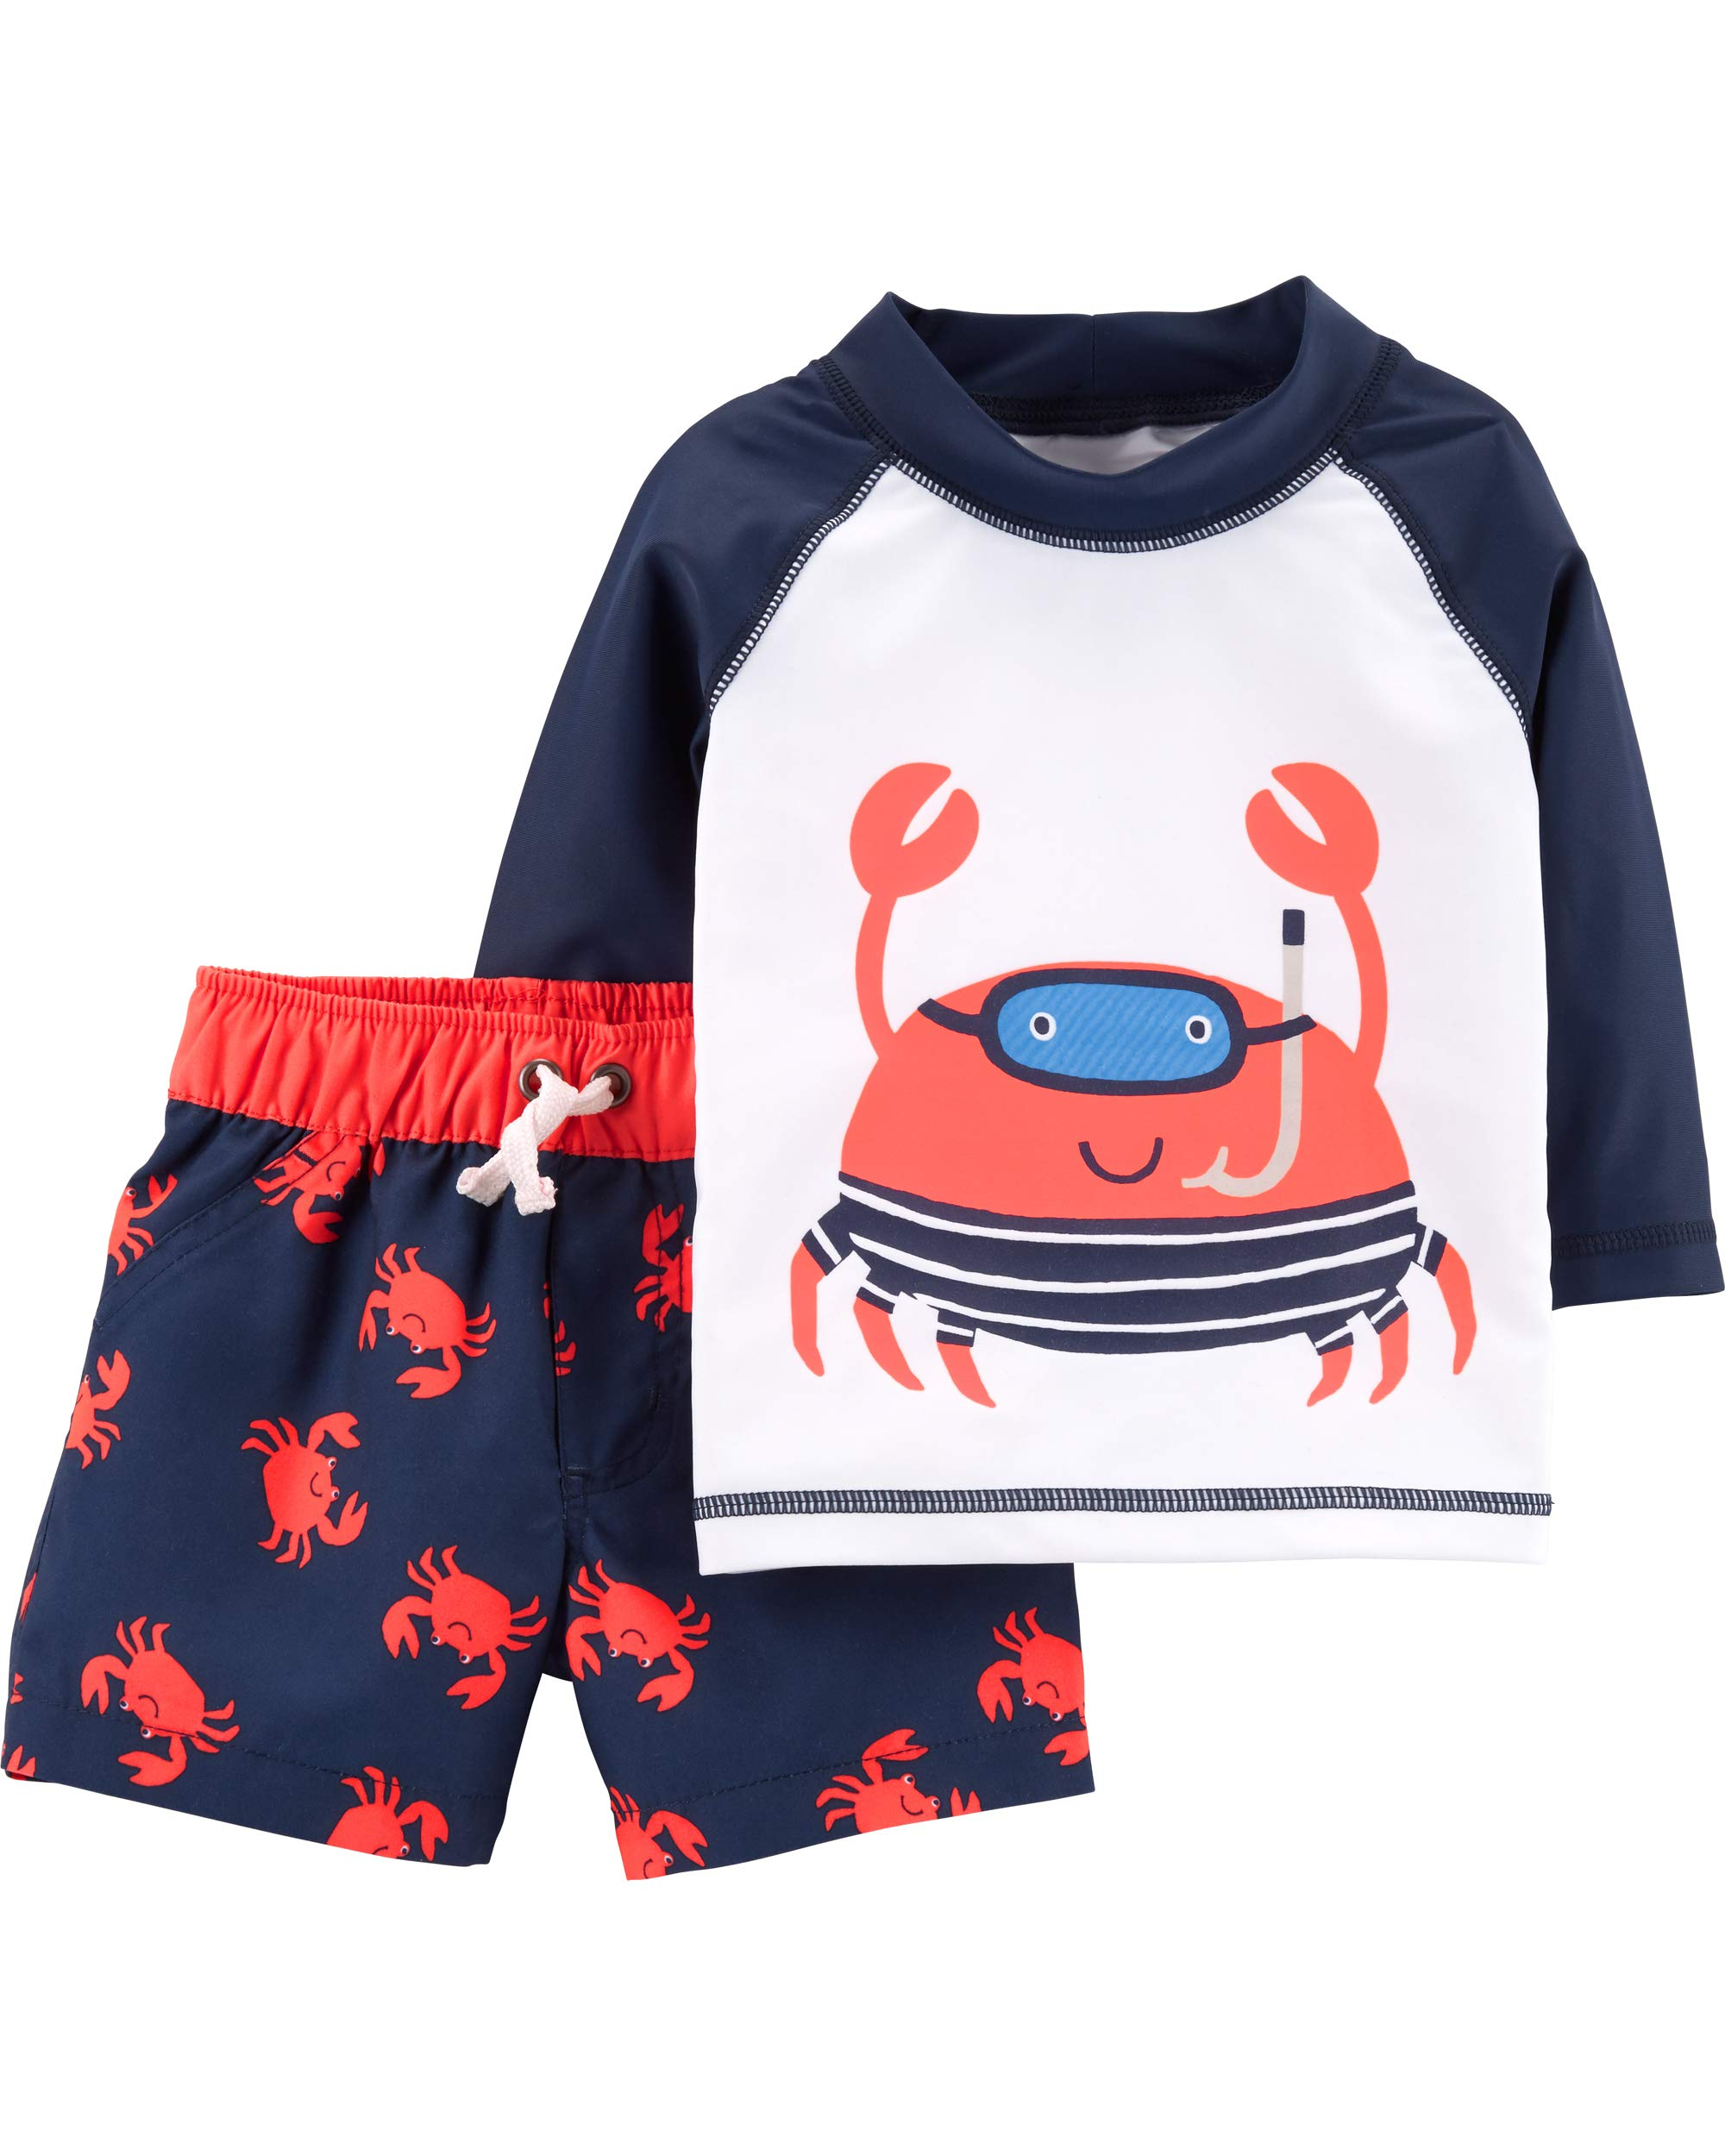 4a83616030e7e Best Rated in Baby Boys' Swimwear Sets & Helpful Customer Reviews ...